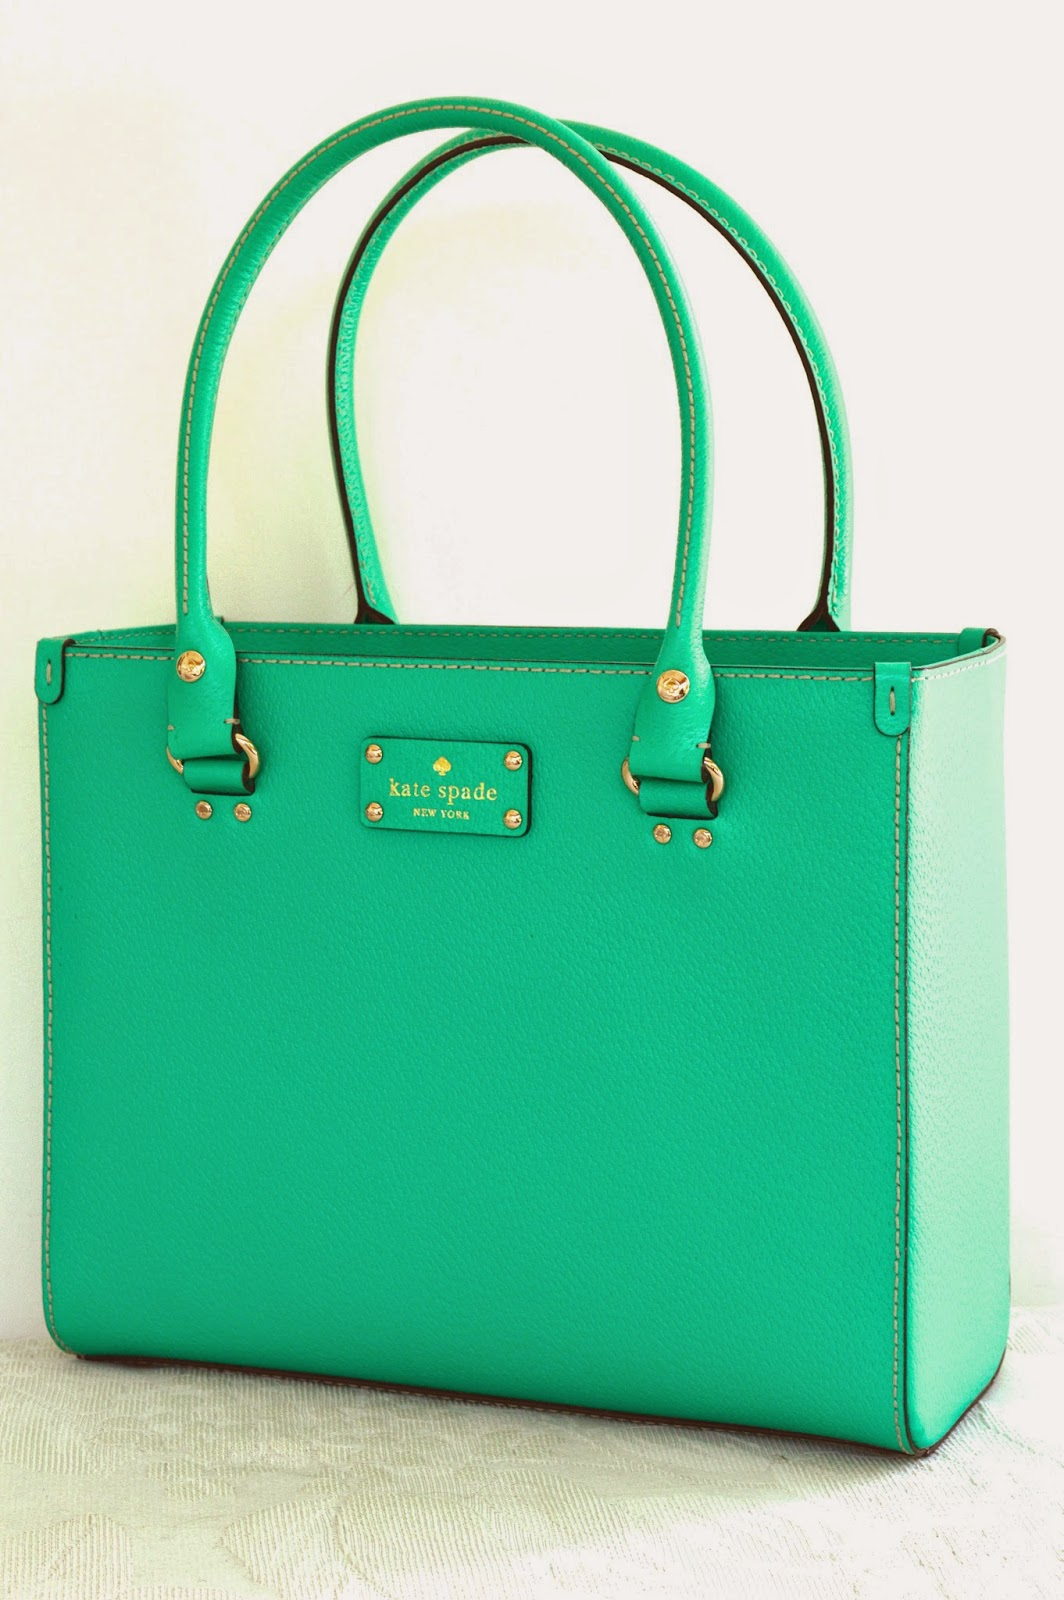 http://www.sunnybeachcouture.com/servlet/the-Kate-Spade-cln-Kate-Spade-Handbags-Wallets/Categories